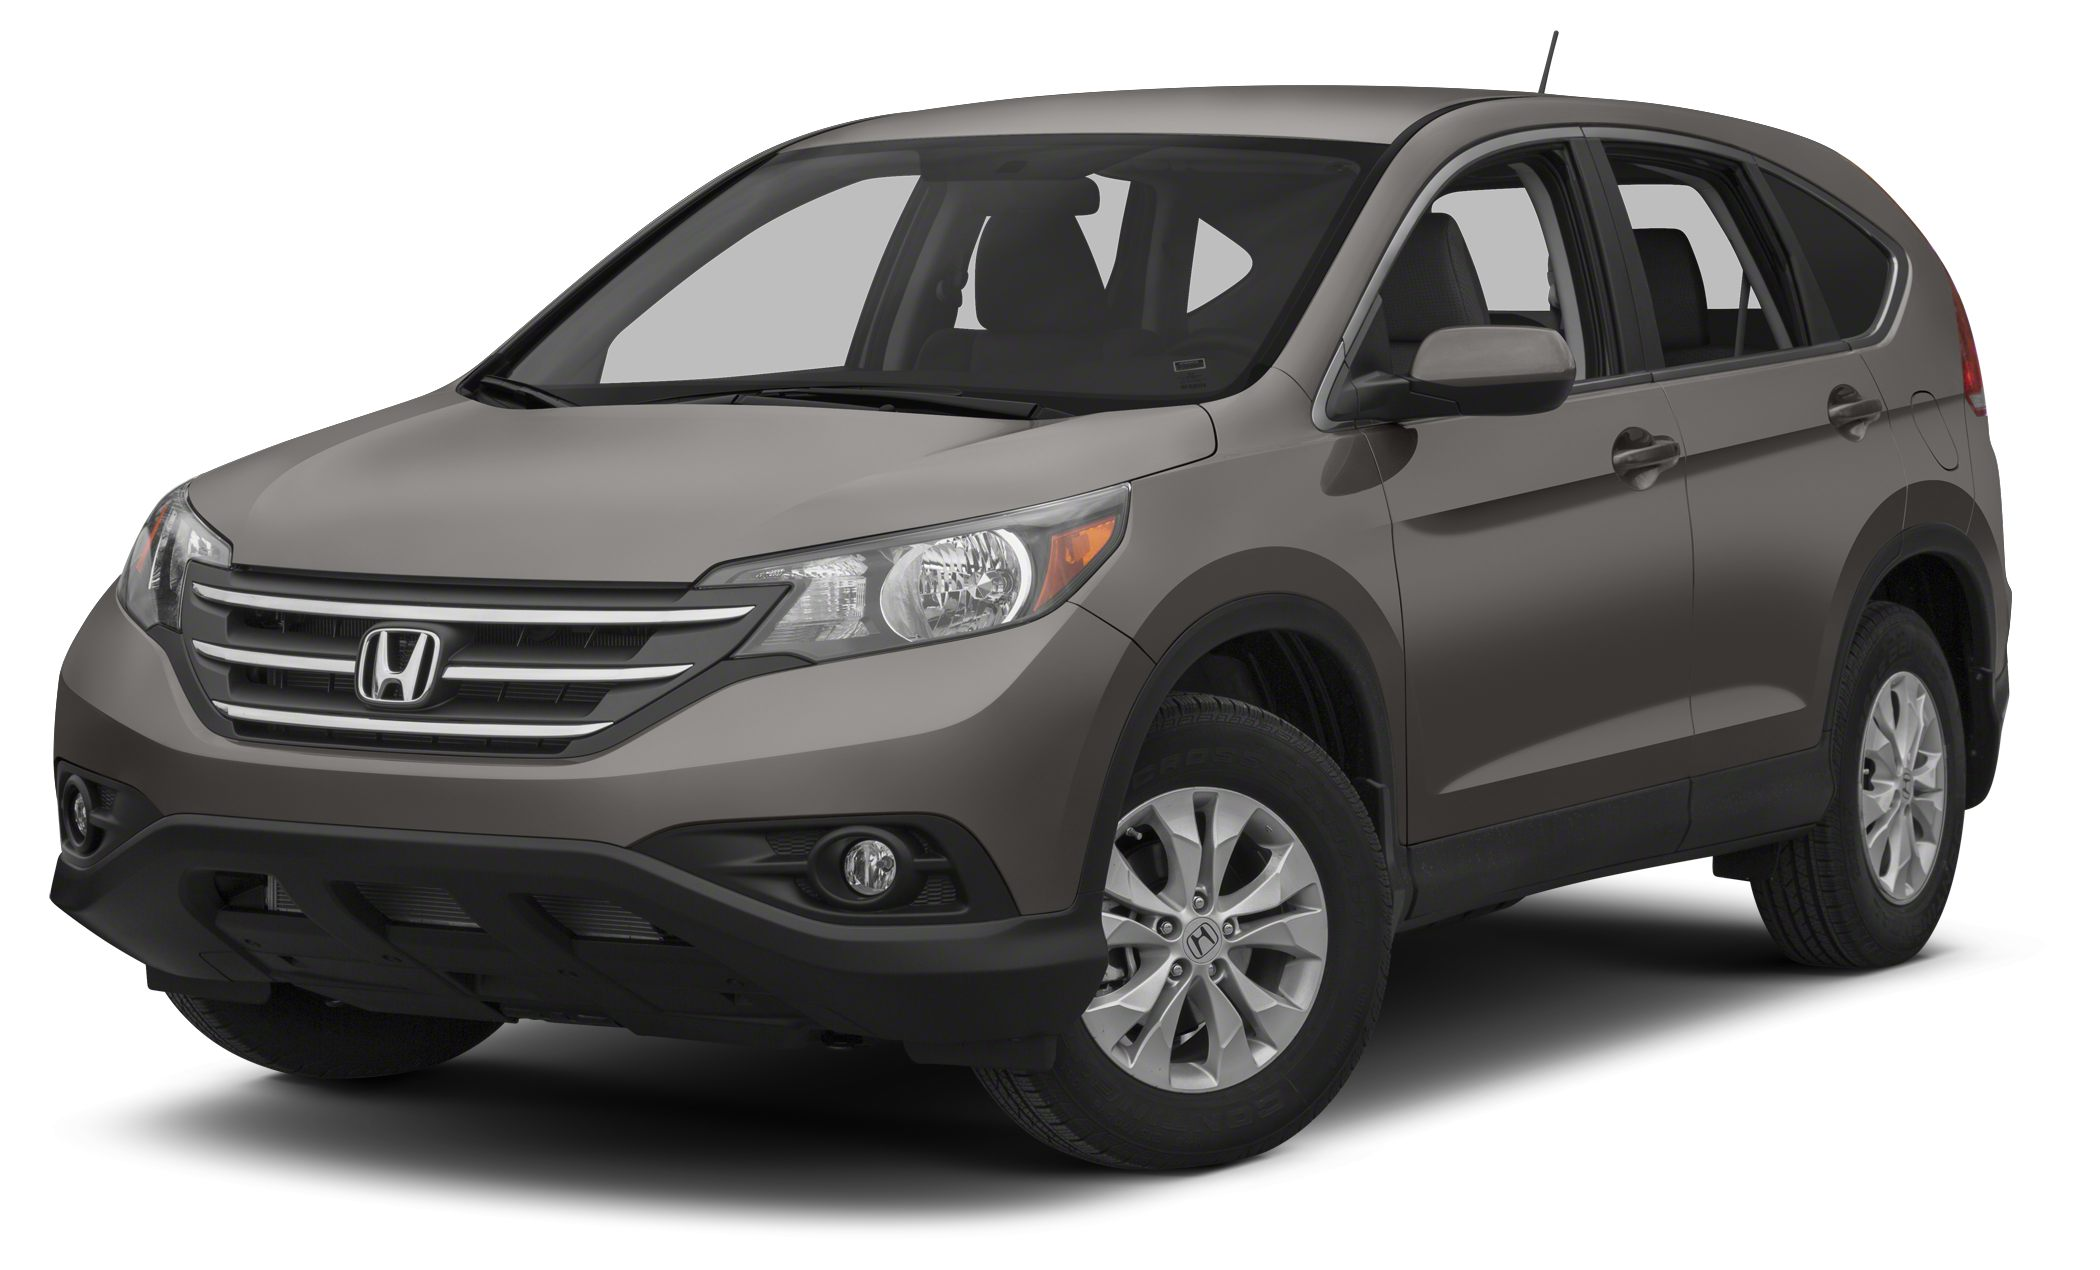 2013 Honda CR-V EX CARFAX 1-Owner Excellent Condition JUST REPRICED FROM 18300 PRICED TO MOVE